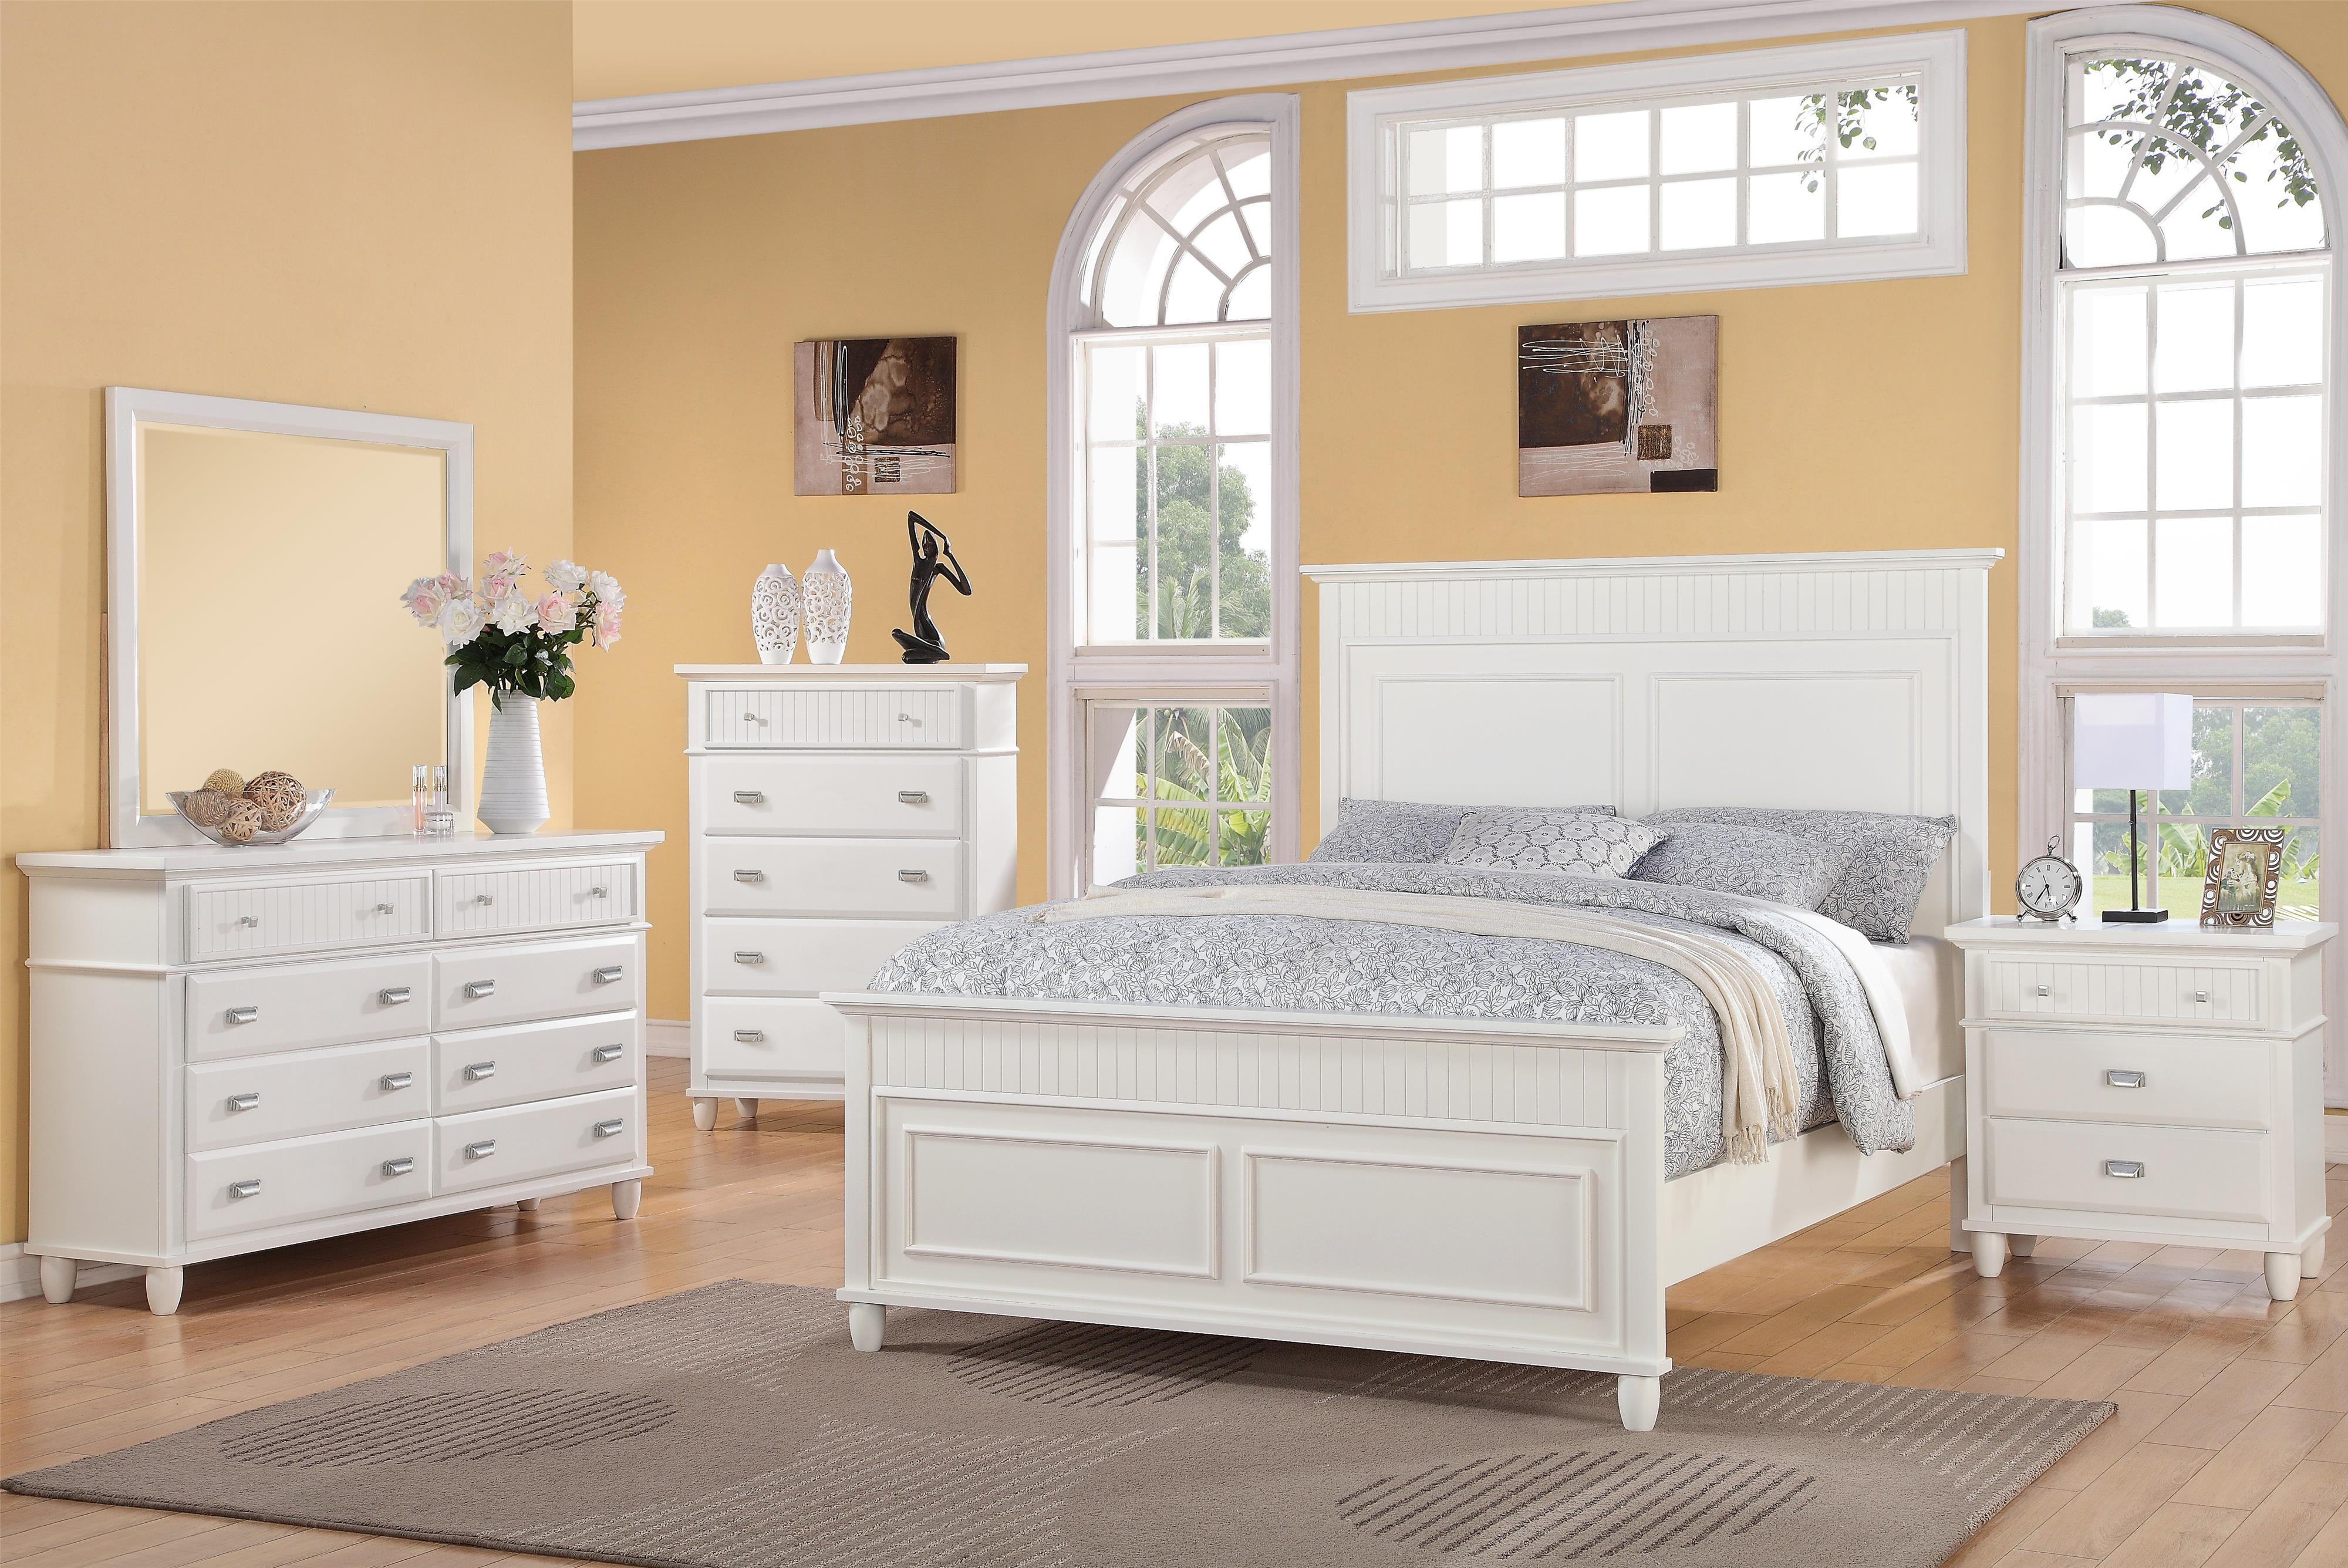 Elements International Spencer Queen Bedroom Group | Household ...